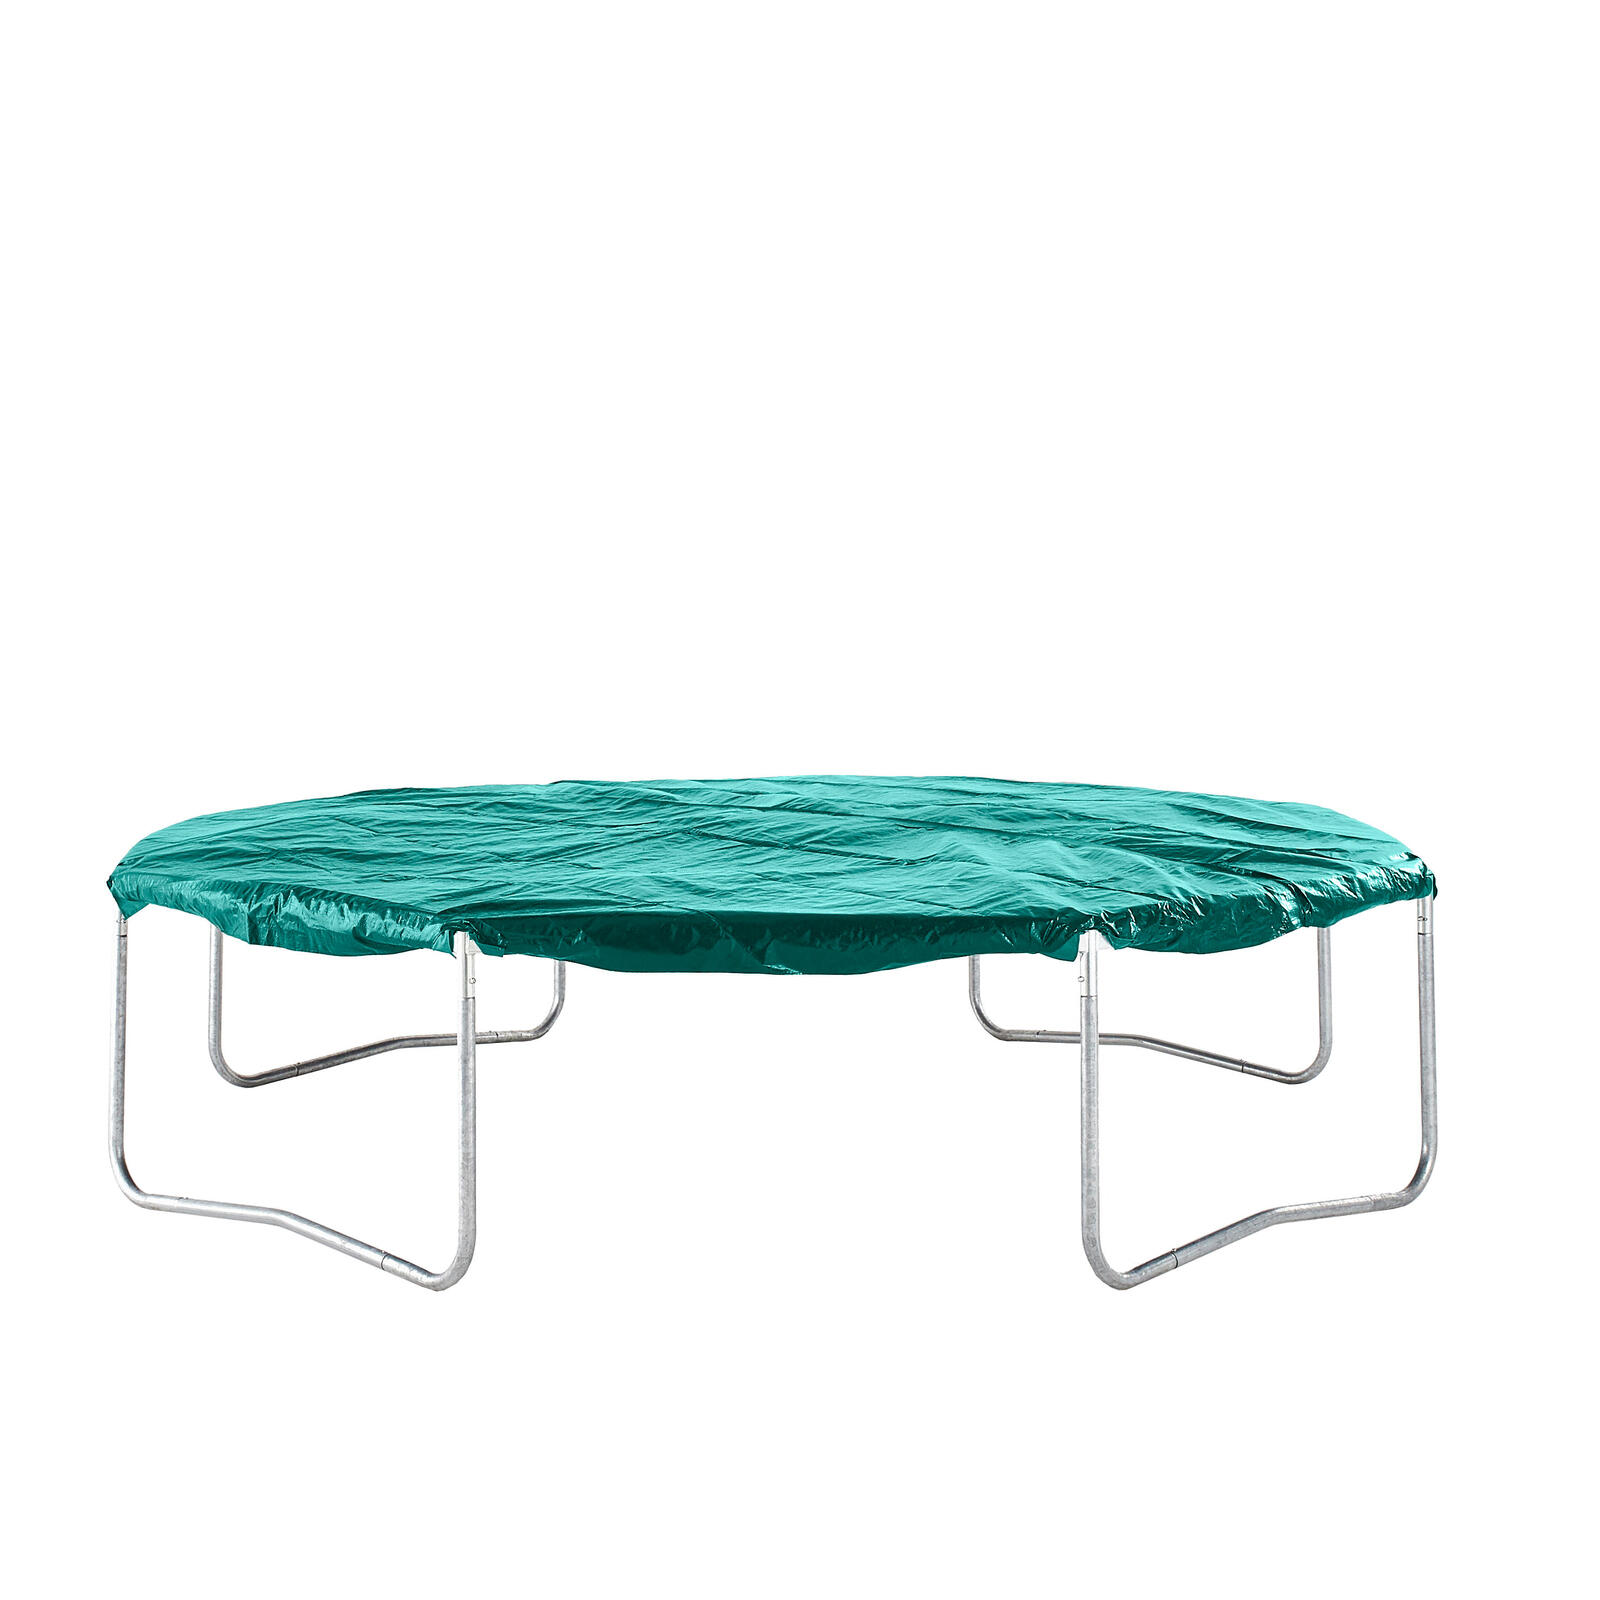 Trampoline cover octagonal 300